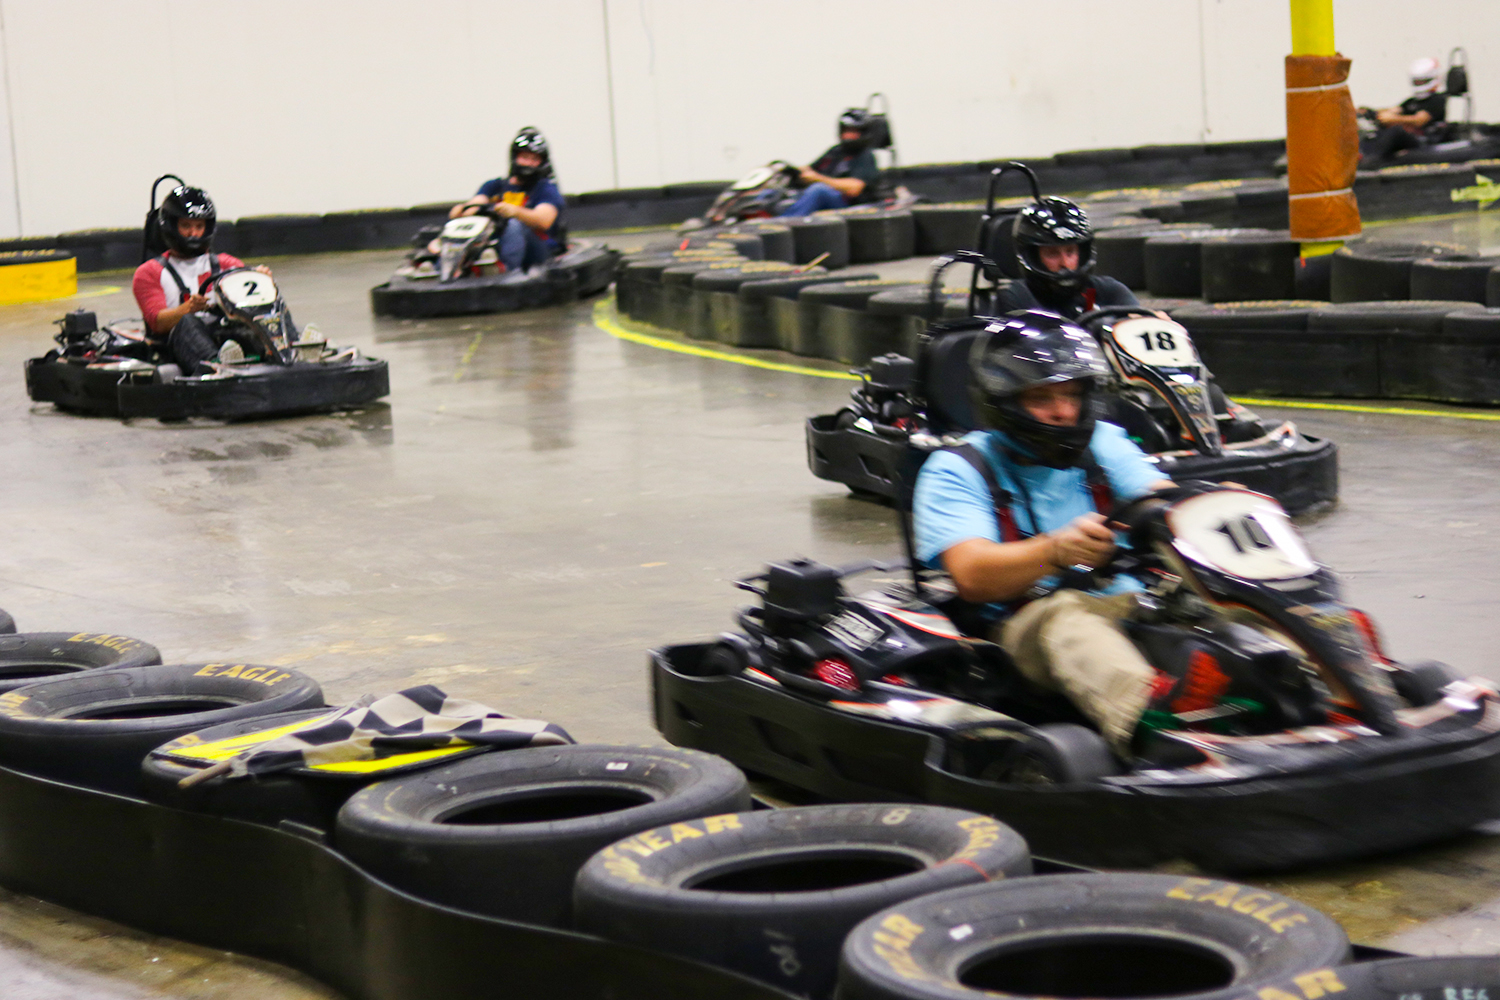 SUPER PRIX - The super-charged version of our popular MINI PRIXchallenge. A 10-minute practice session, followed bya 10-minute qualifying session determines the raceposition for the final heat. All karts are lined up ingrid formation as drivers compete in a final 10-minuterace to the checkered flag.